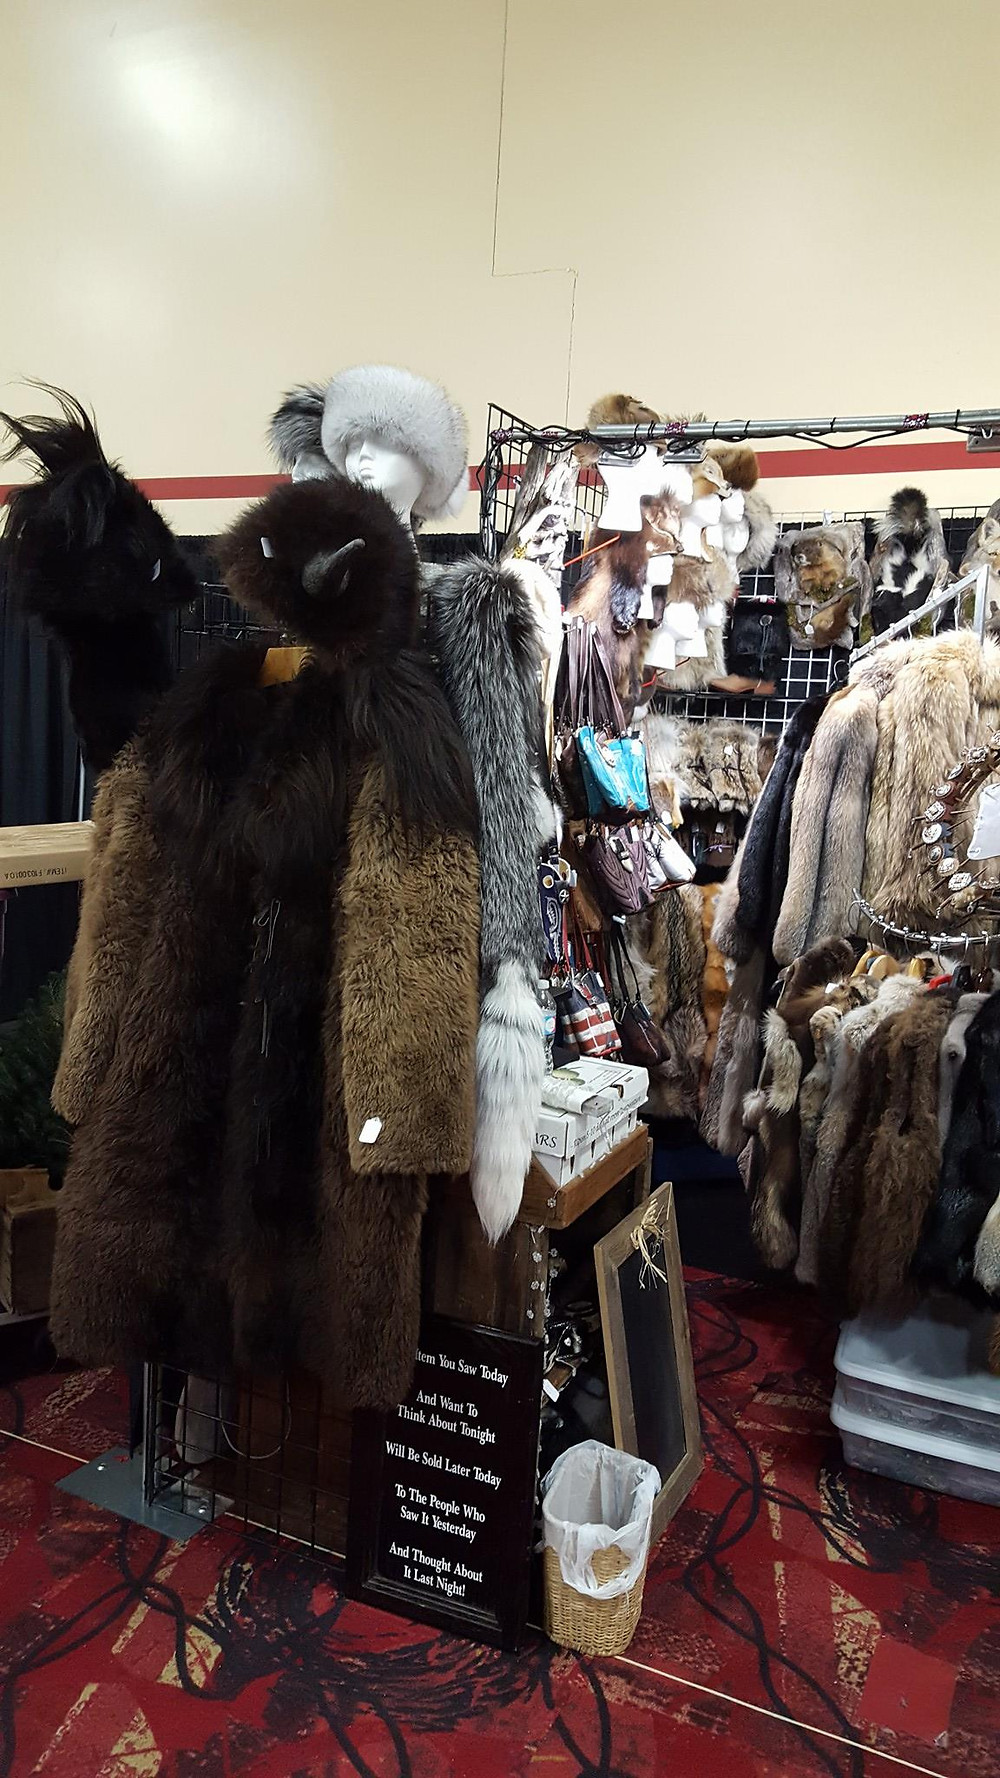 Buffalo Coat by Millie Mathies-Beck